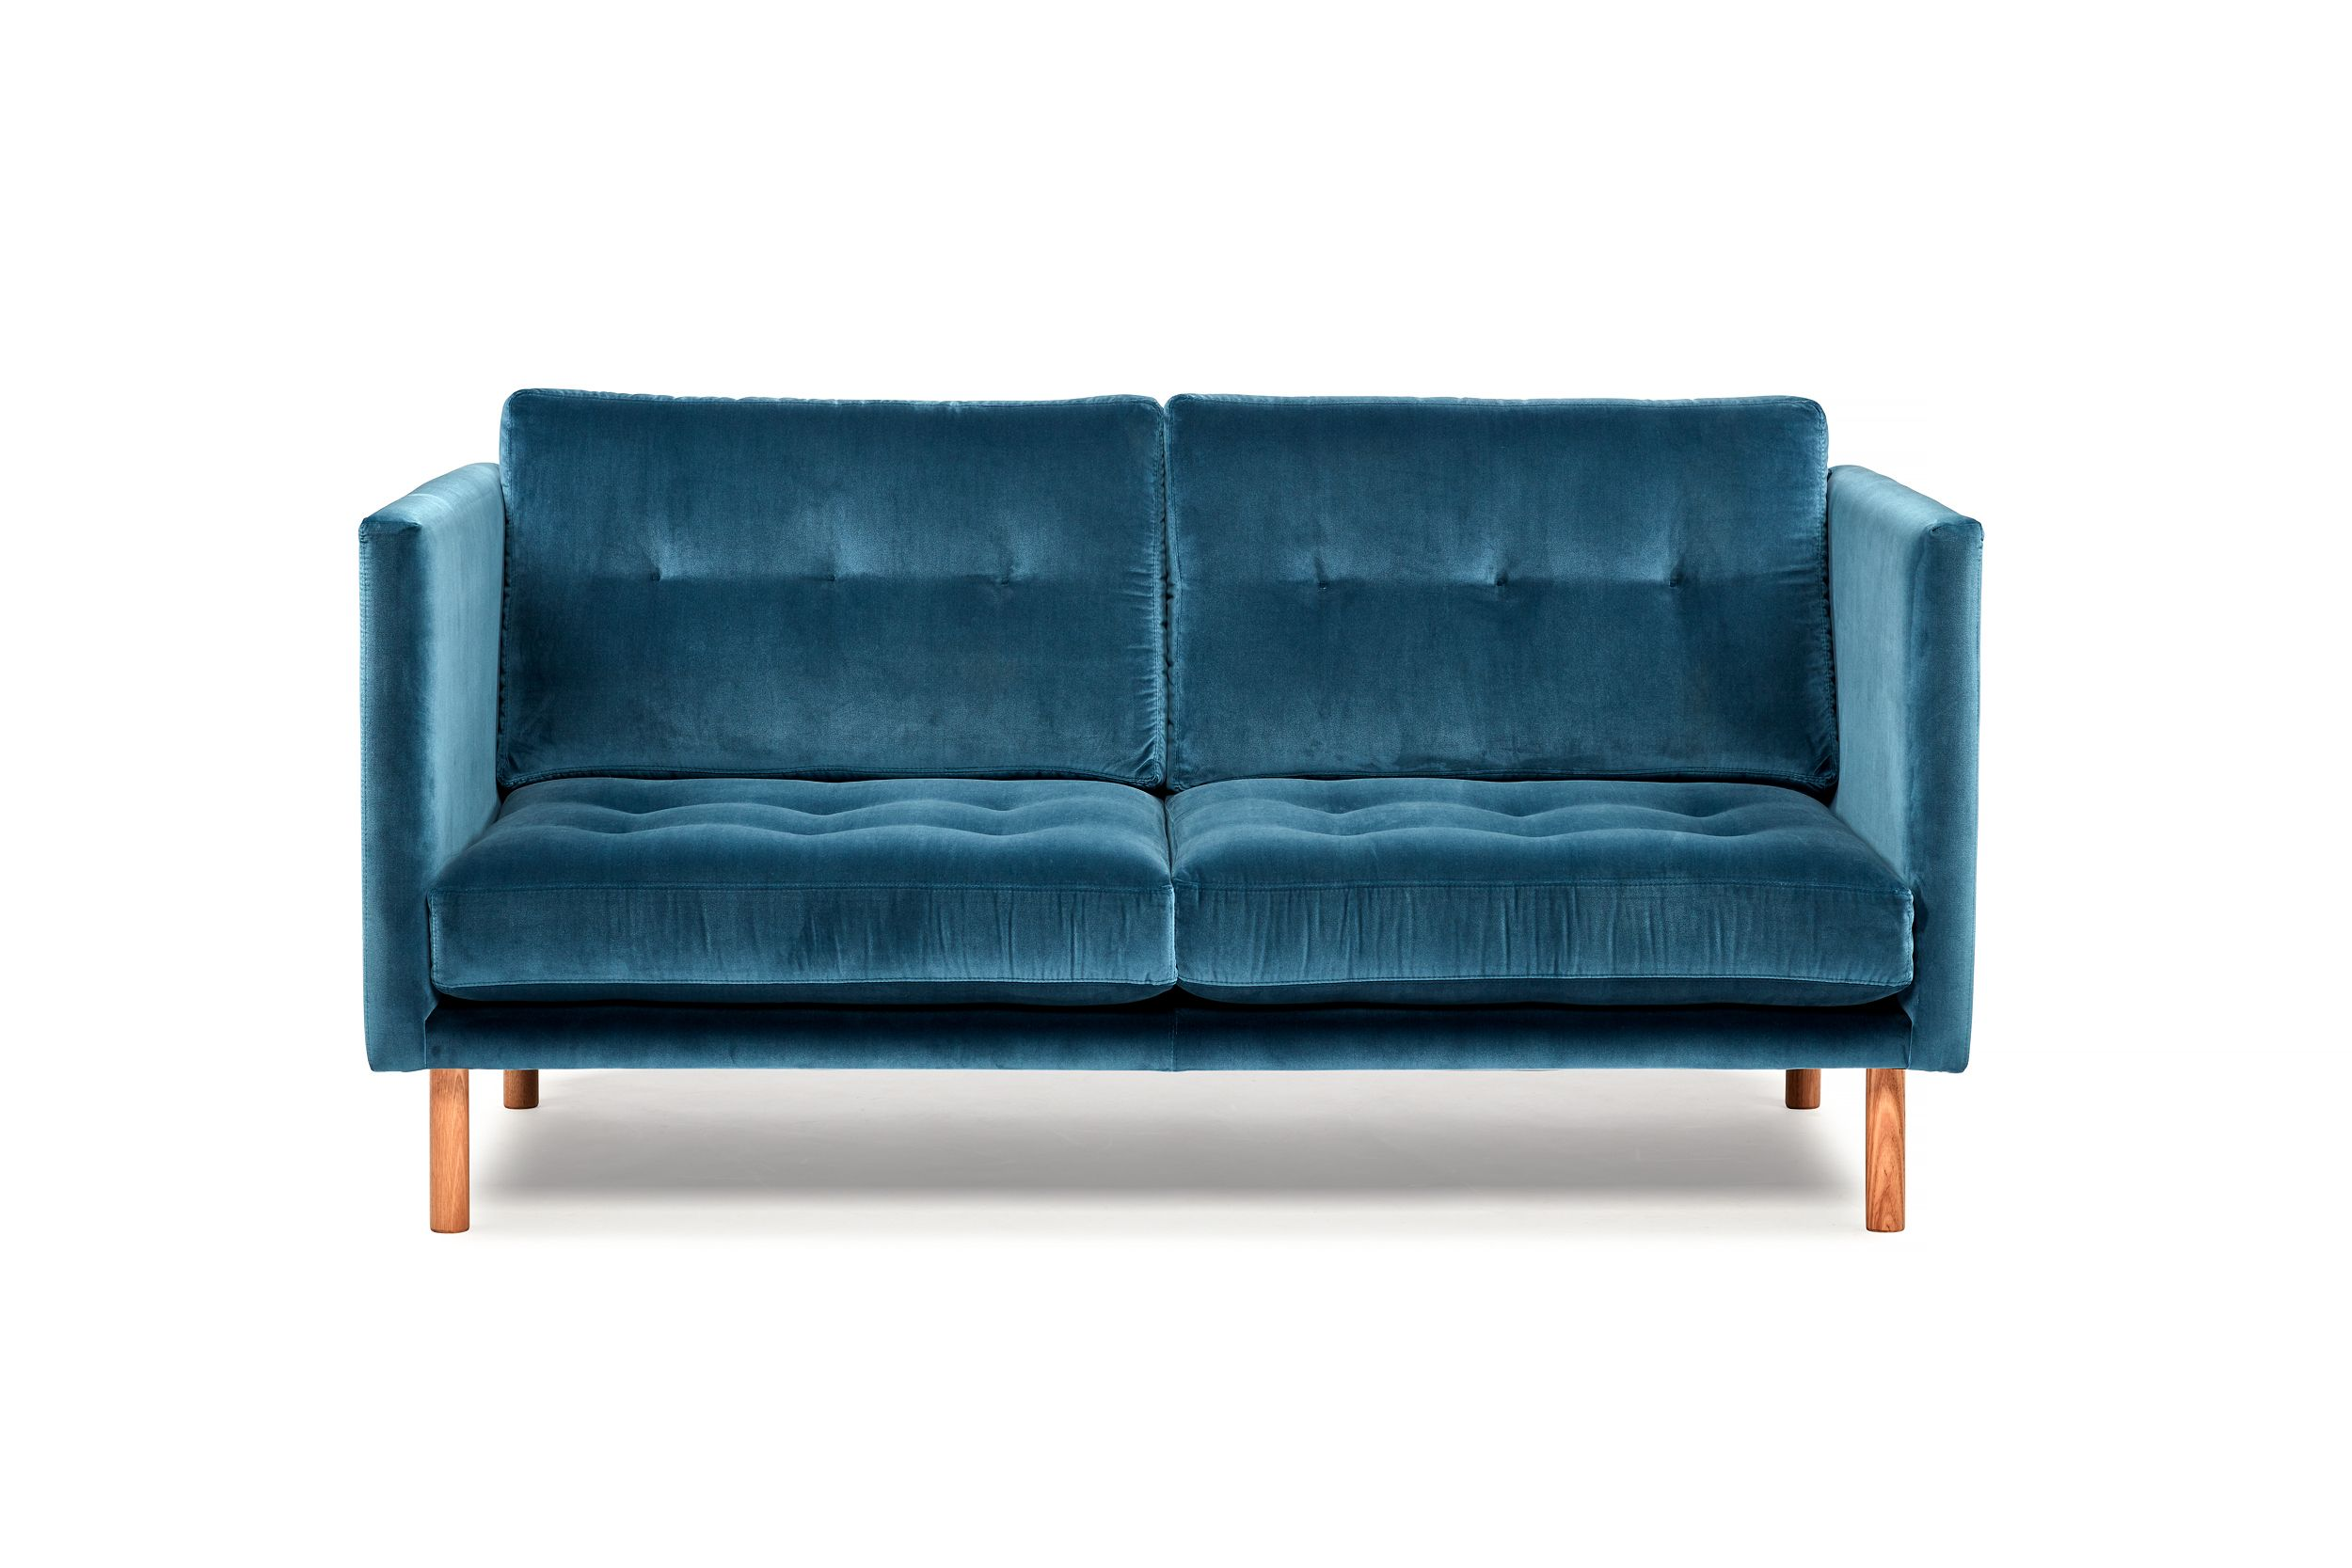 Stanley Sofa by Arthur G Green Velvet curved Sofa